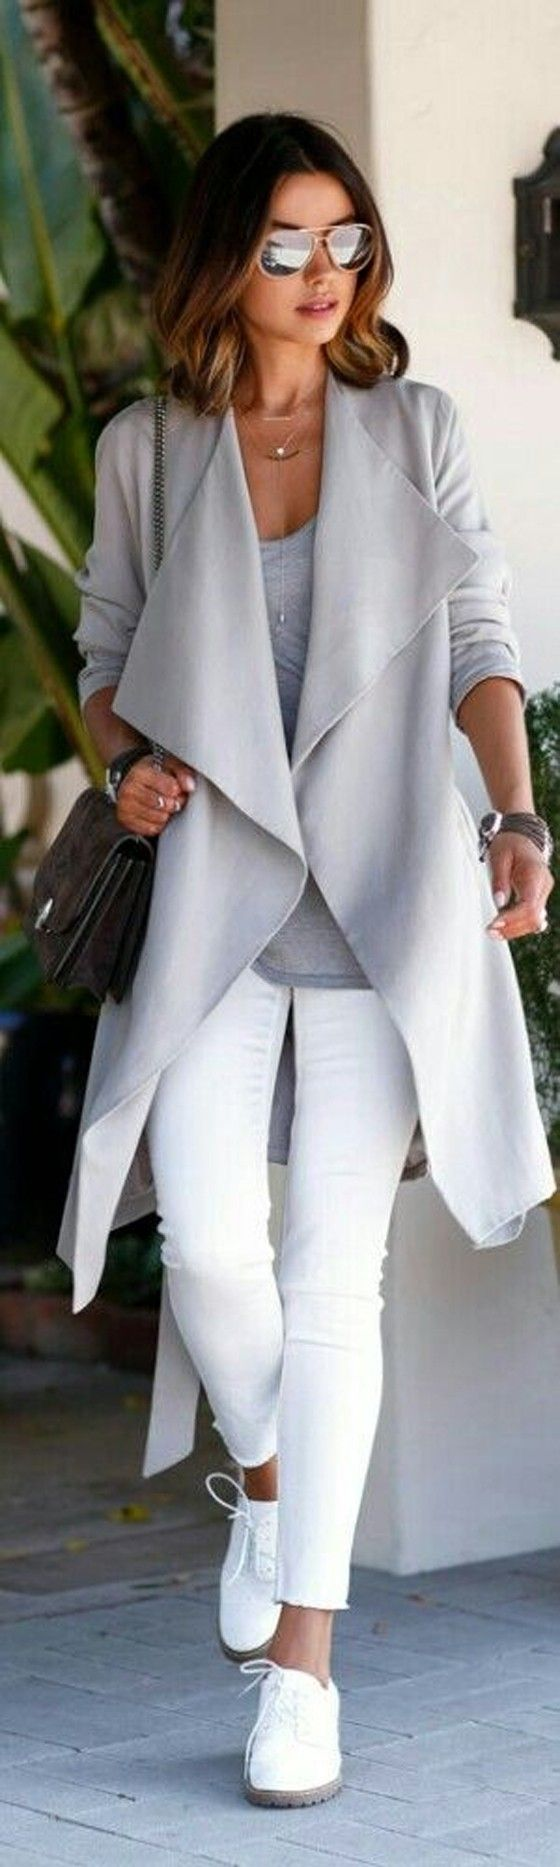 Grey Plain Belt Pockets Turndown Collar Long Sleeve Trench Coat Muy buena combinación de color, sobrio pero atractivo